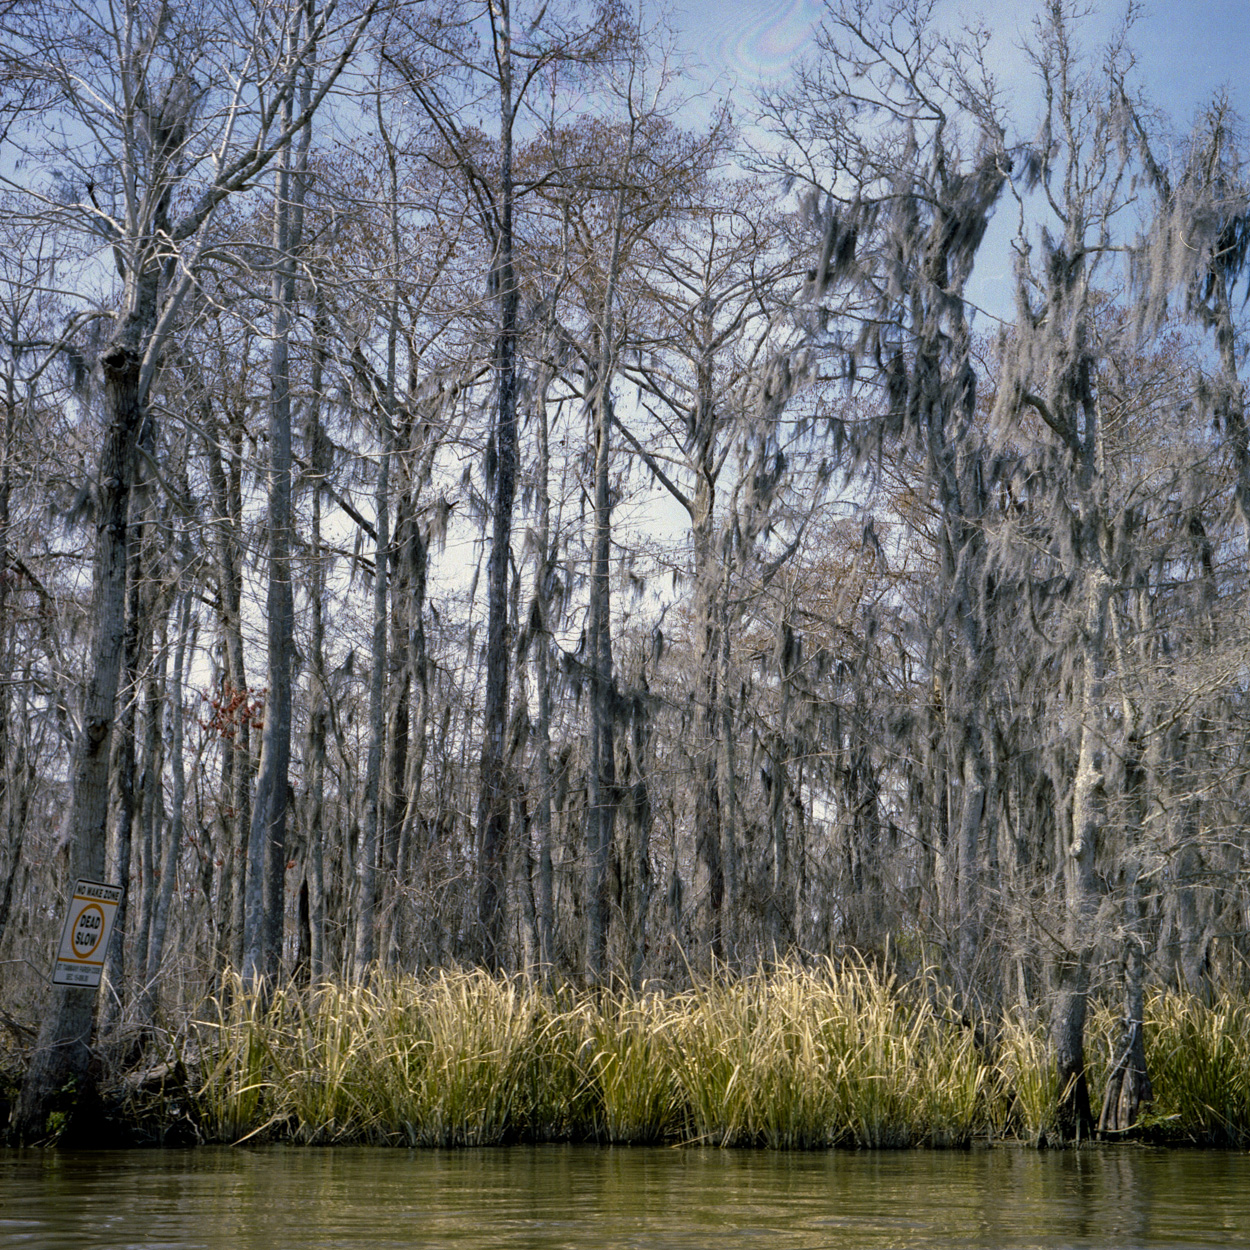 Bald CyprusTrees in hibernation on a swamp tour. These trees are very resilient, I was told when Katerina came through they were toppled over but then just bounced right back up.